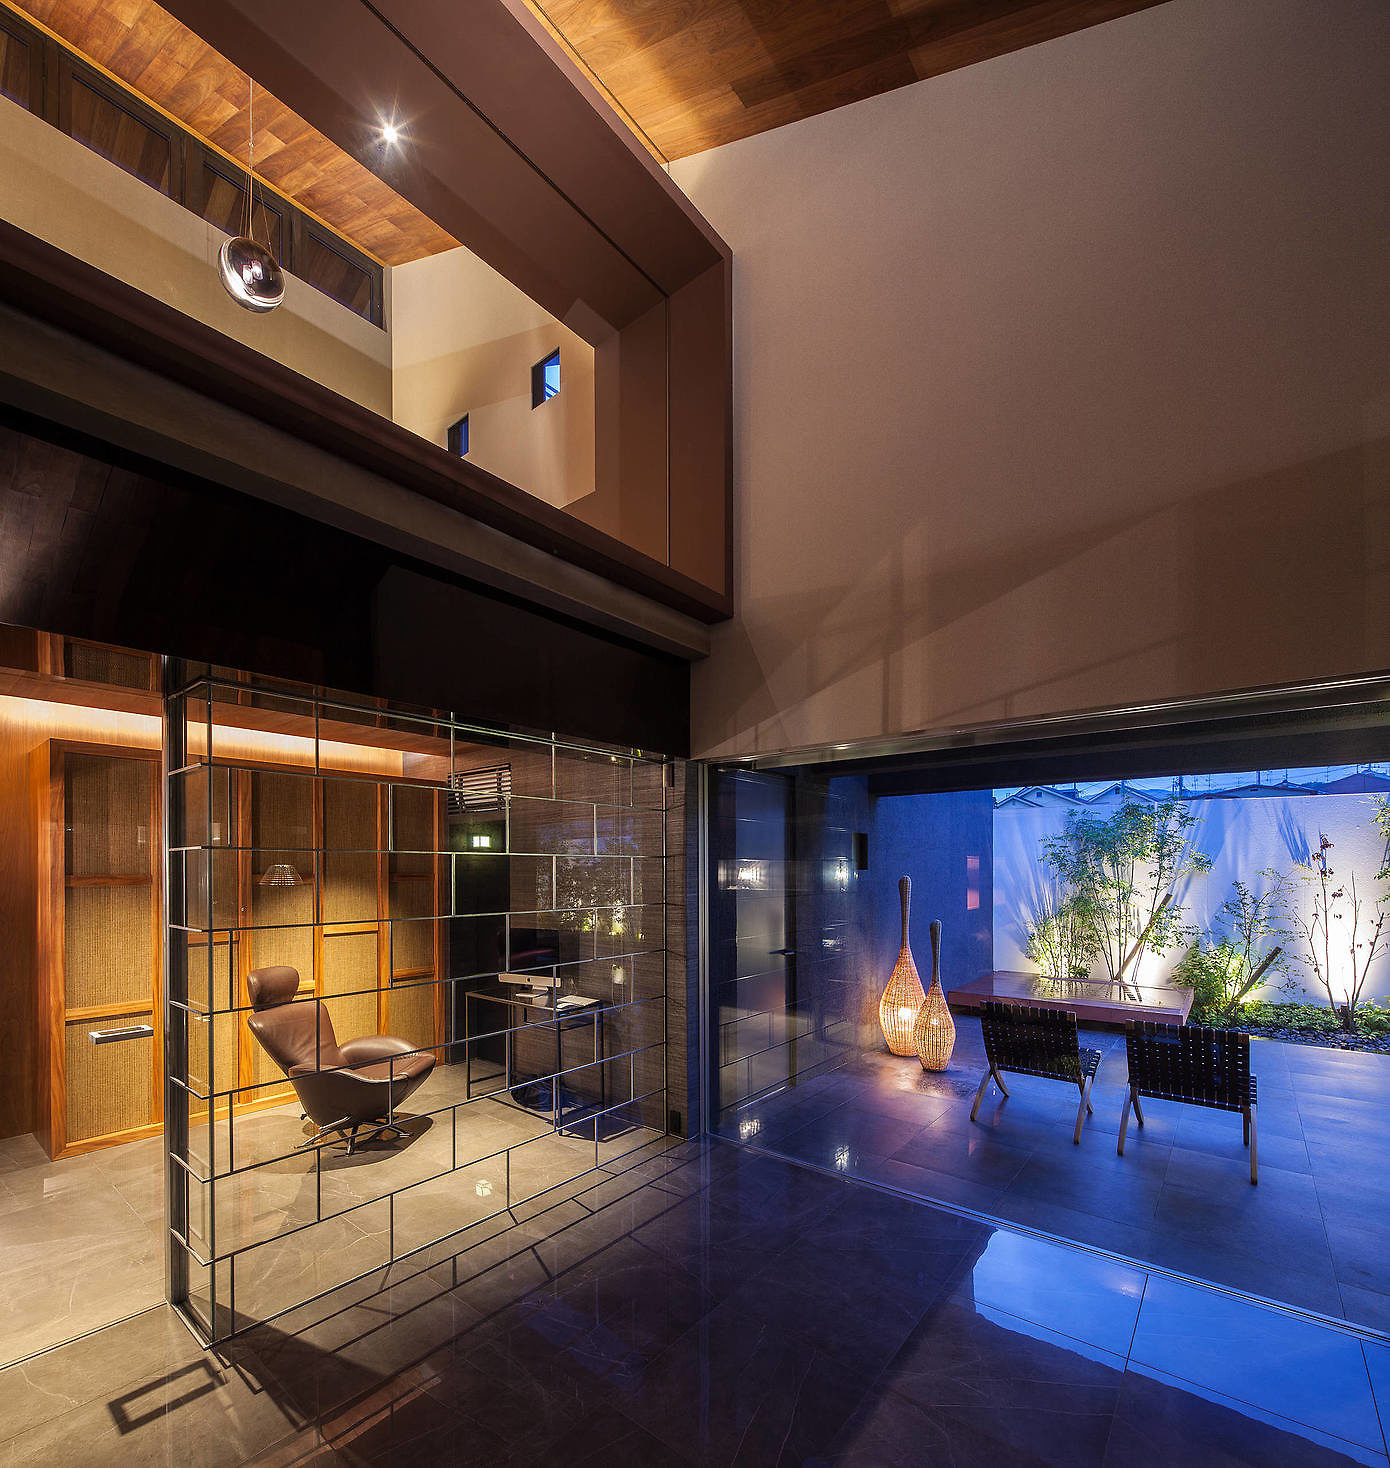 House in Japan by Hiraoka Architects